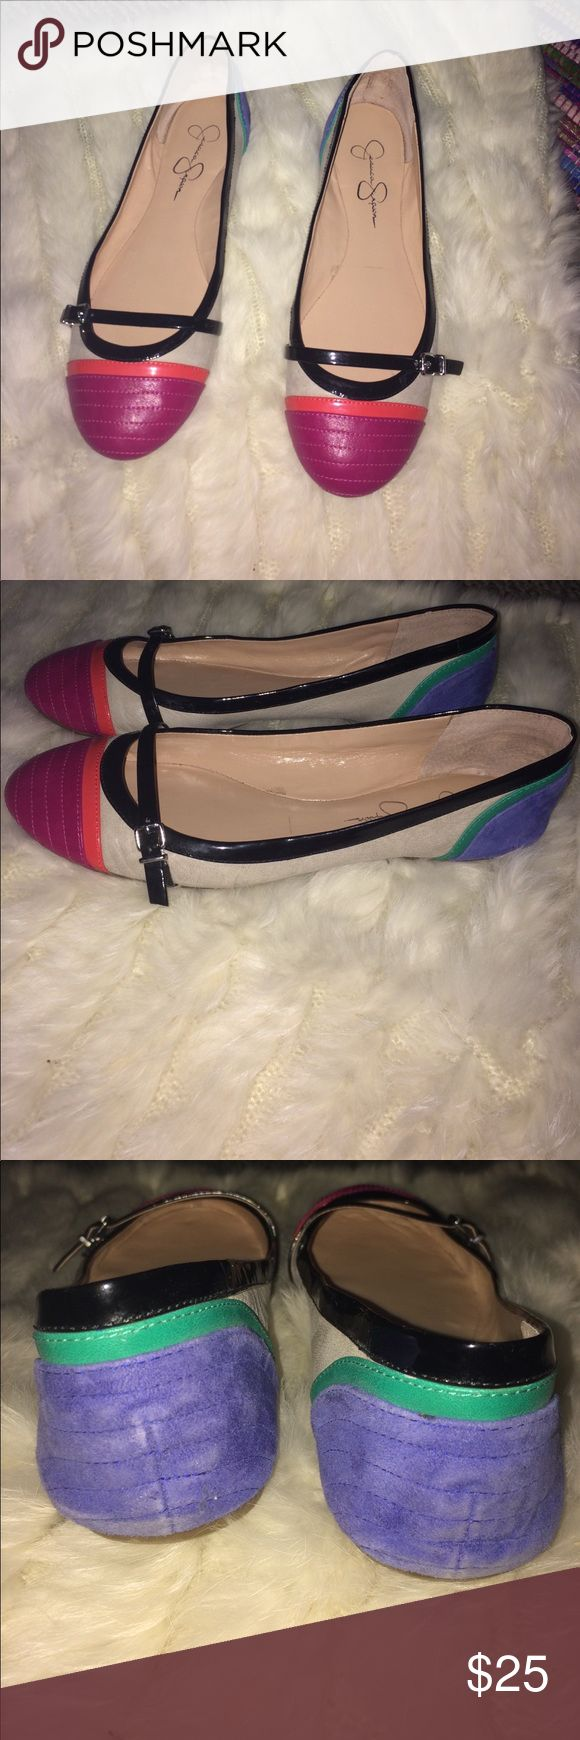 🔥🔥PRICE DROP 🔥🔥Jessica Simpson flats Beautiful multi color Jessica Simpson flats pre-loved in good condition ⭐️ Jessica Simpson Shoes Flats & Loafers